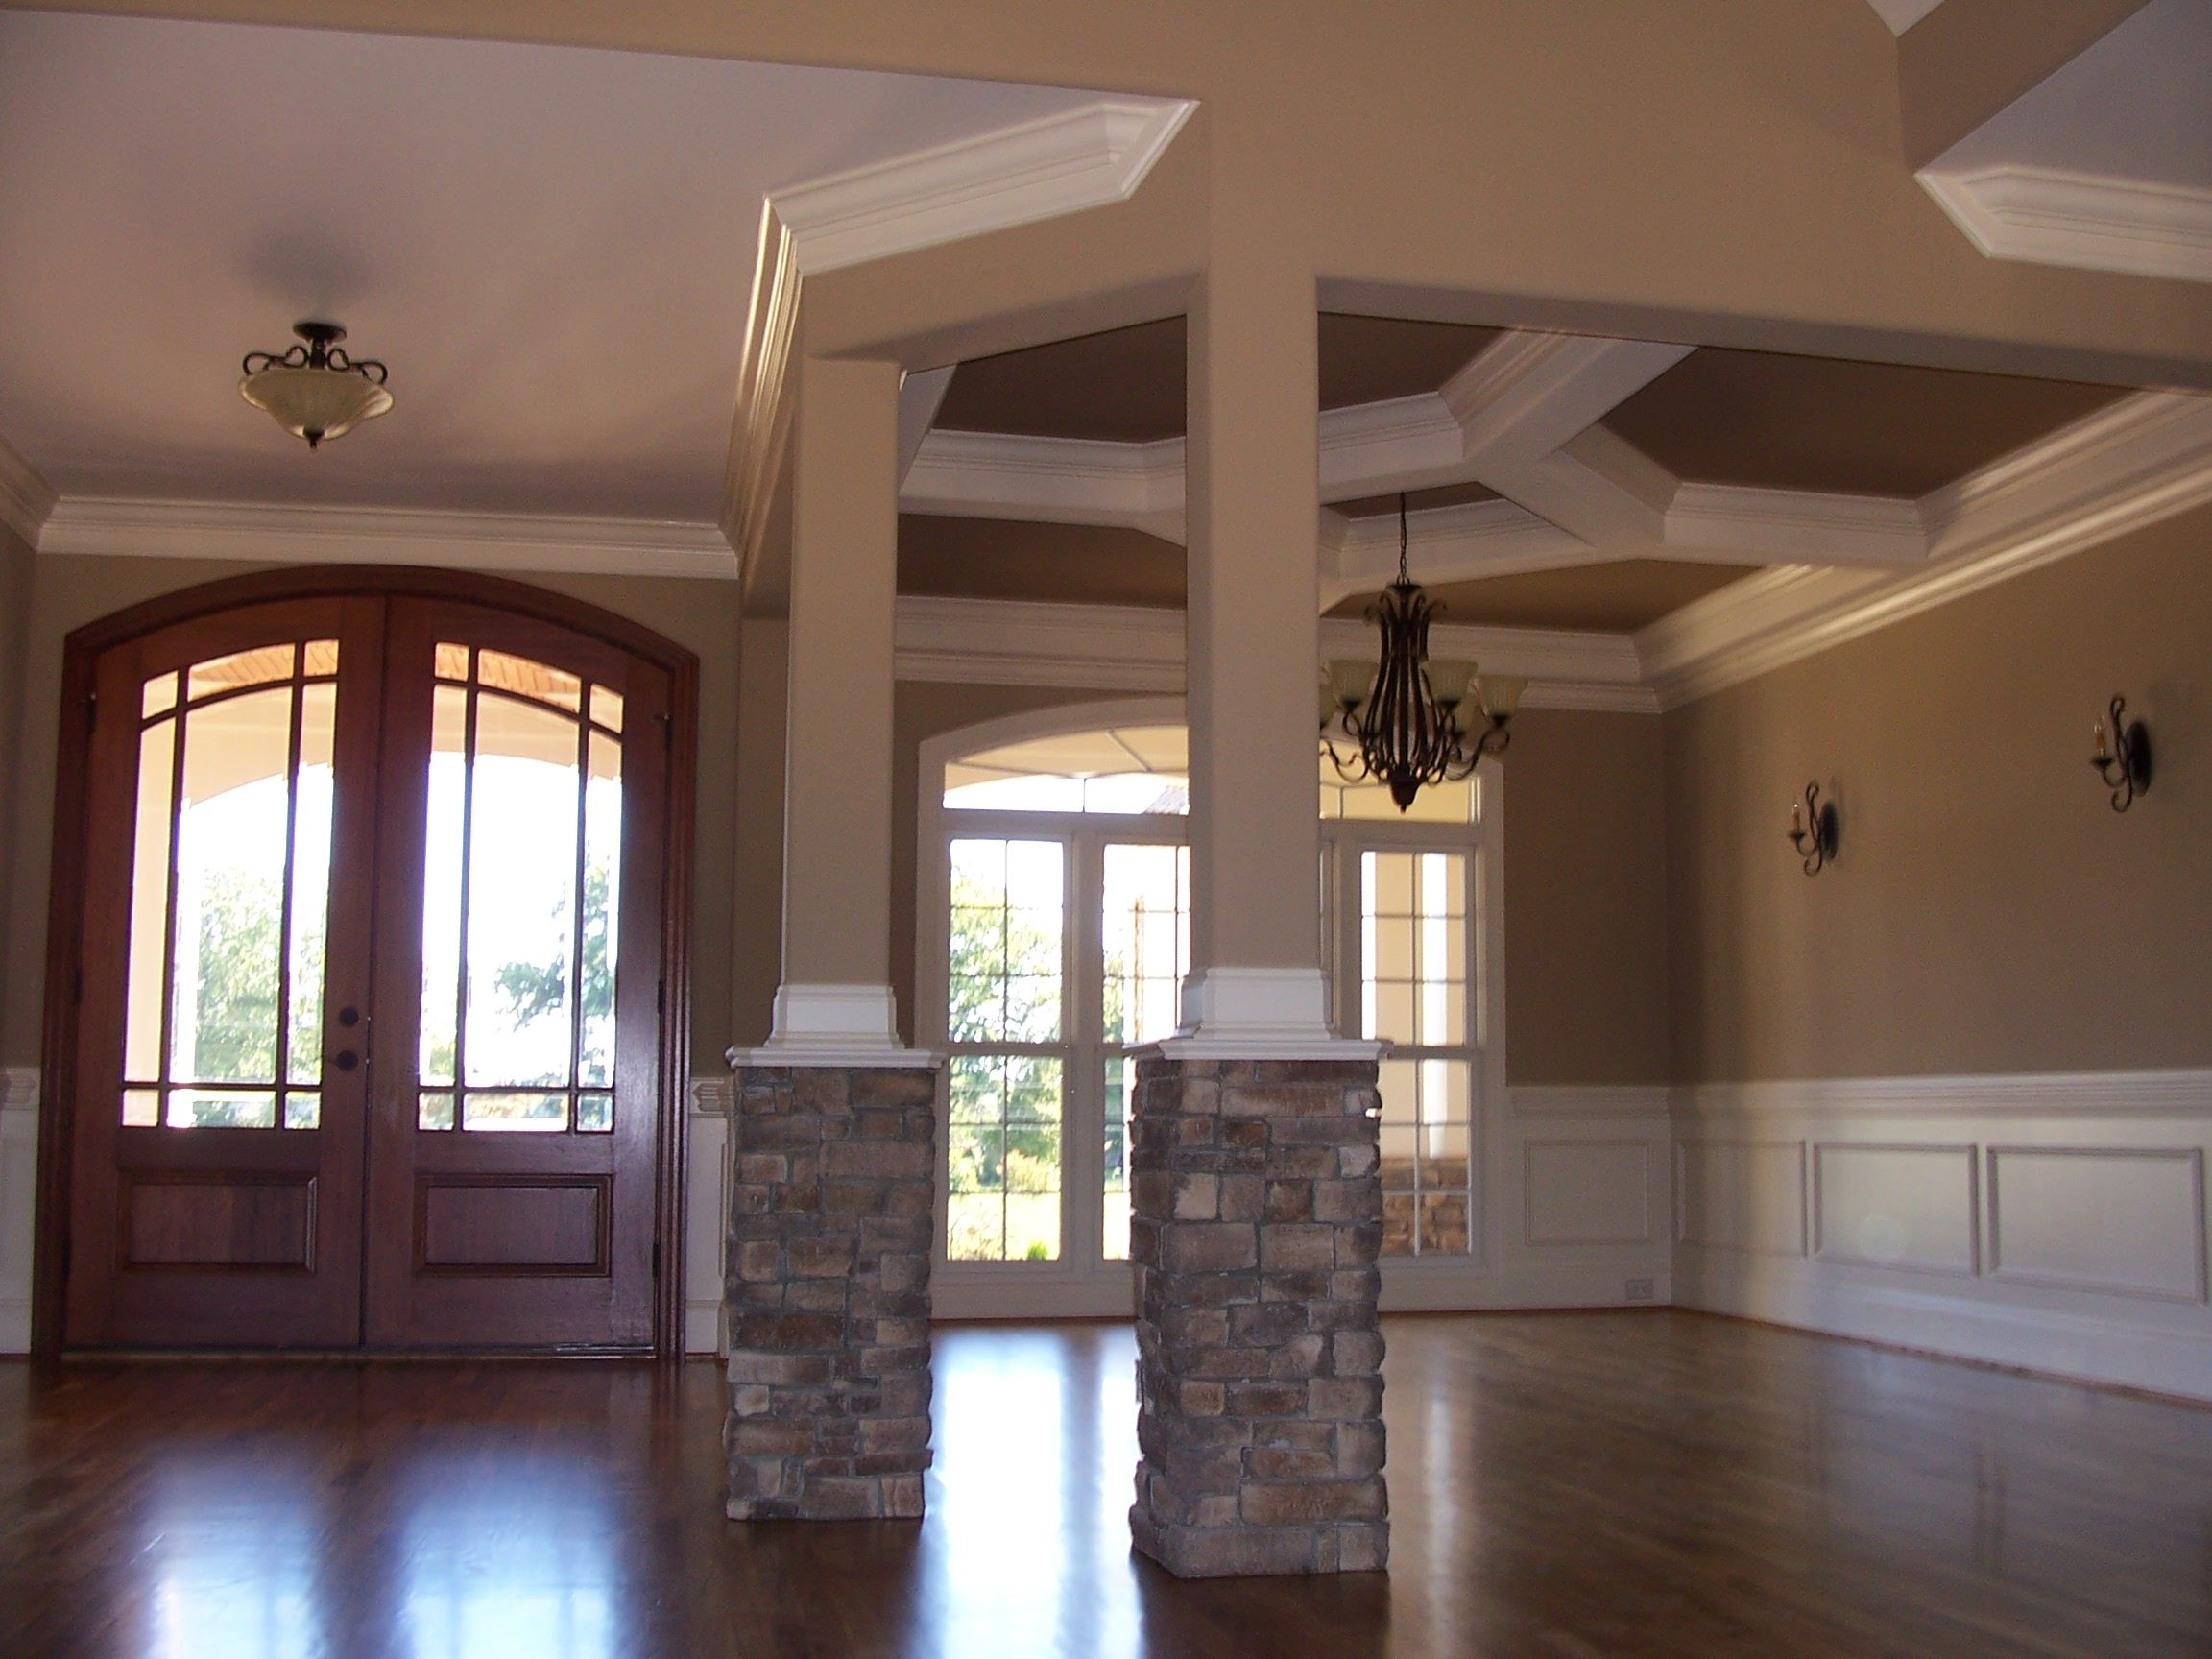 model homes interior paint colors nothing better on house paint interior color ideas id=43463